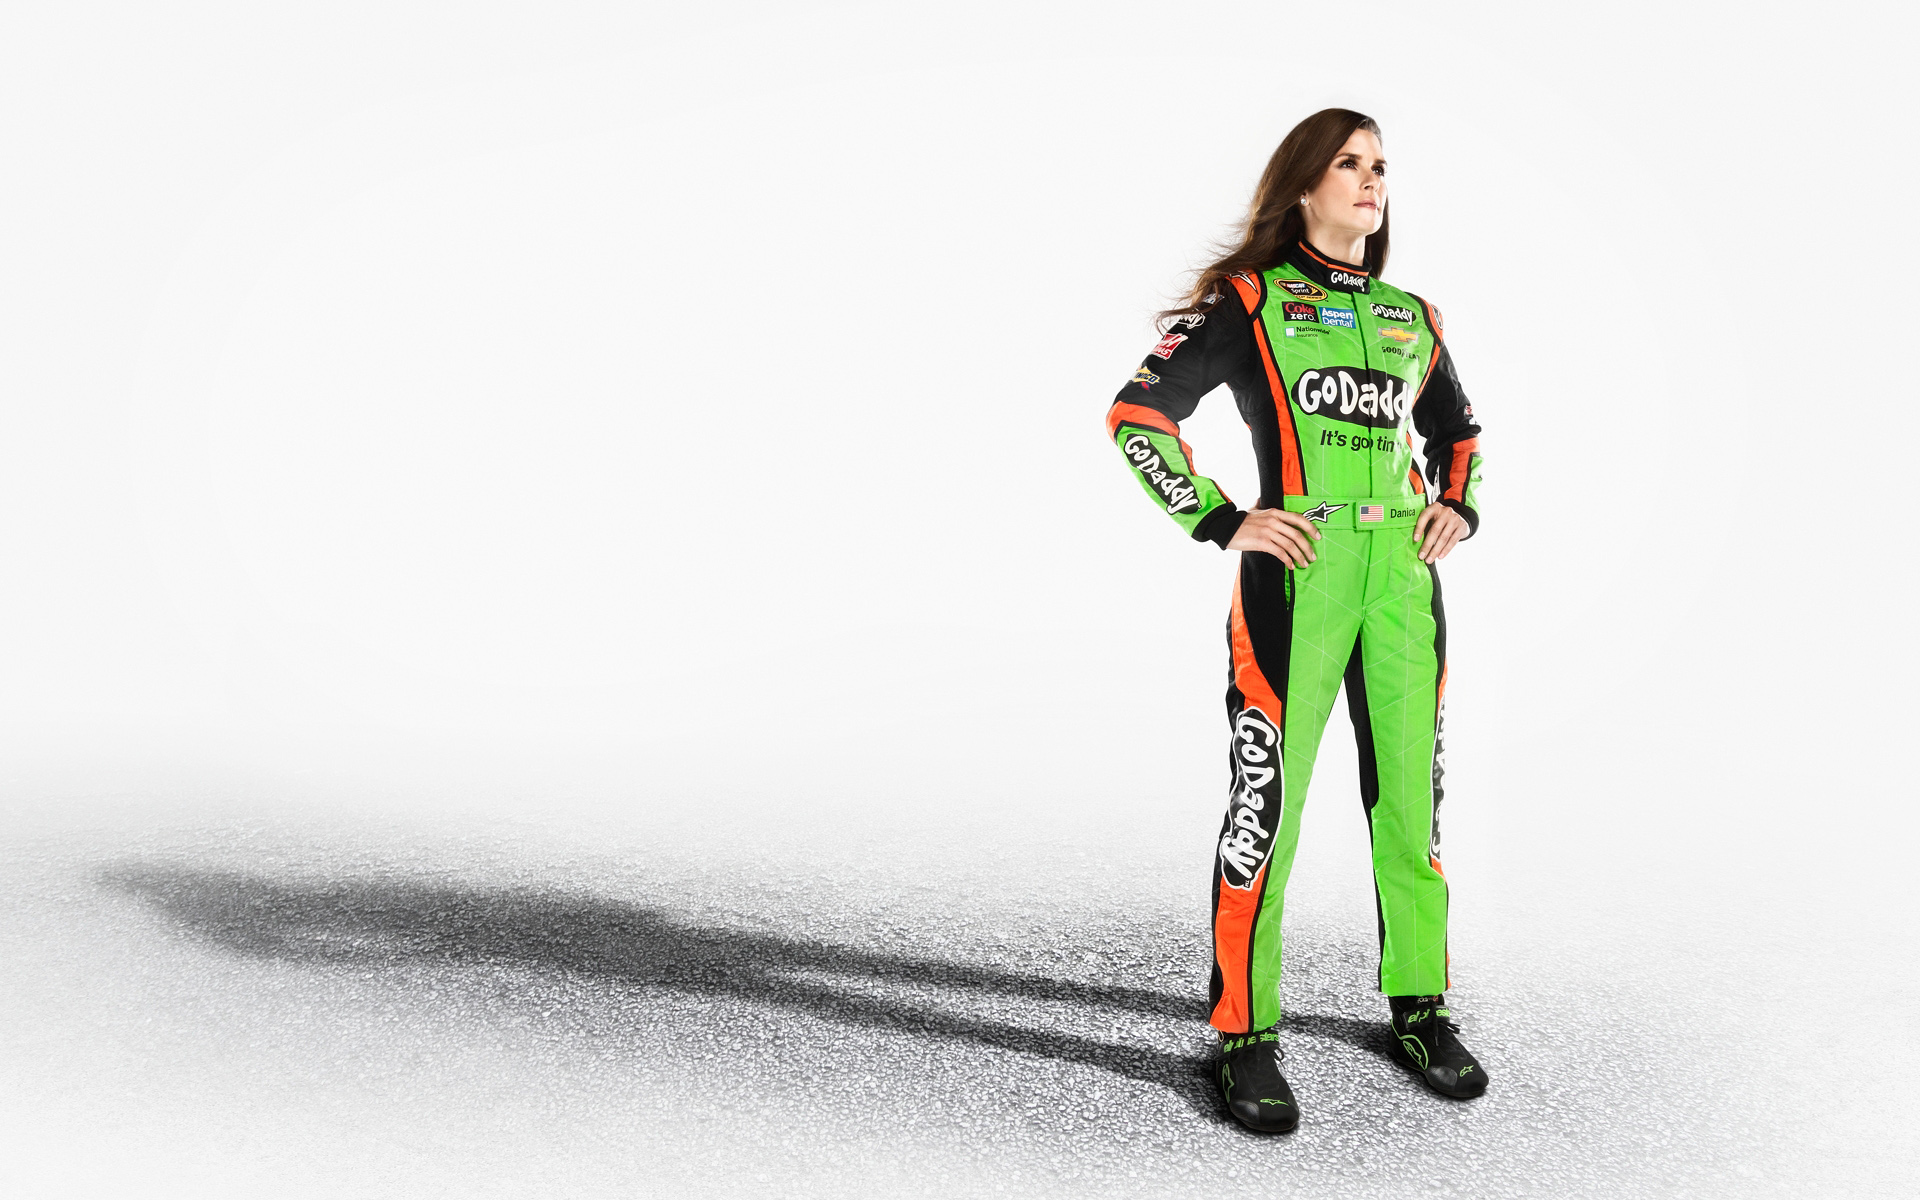 Danica Patrick Photographed by Celebrity Photographer